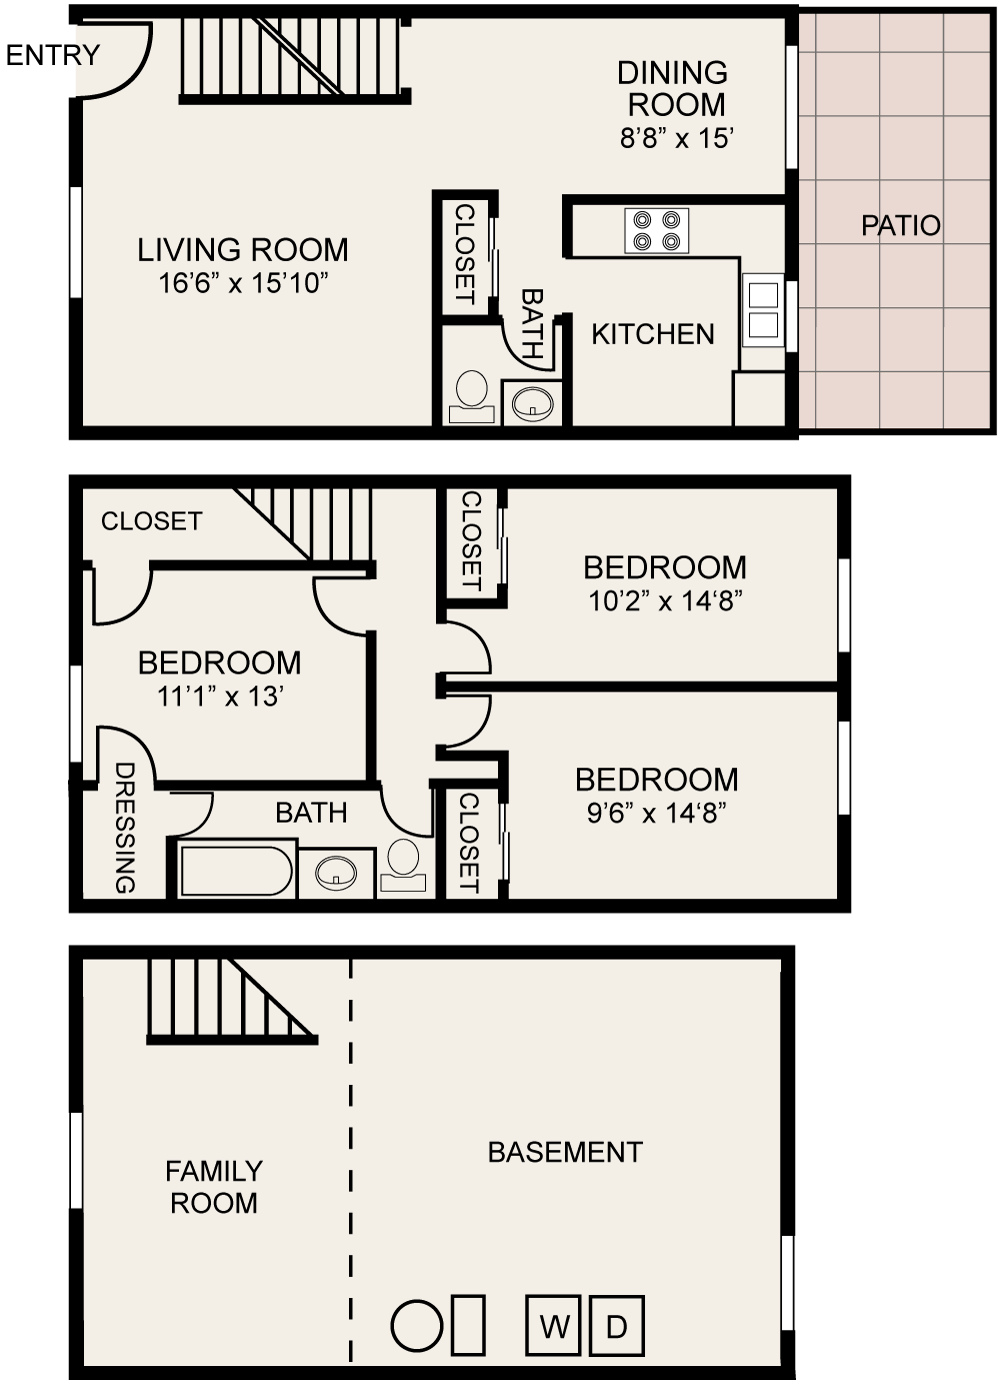 Floor plans of central square apartments in columbus oh - 3 bedroom apartments downtown columbus ohio ...